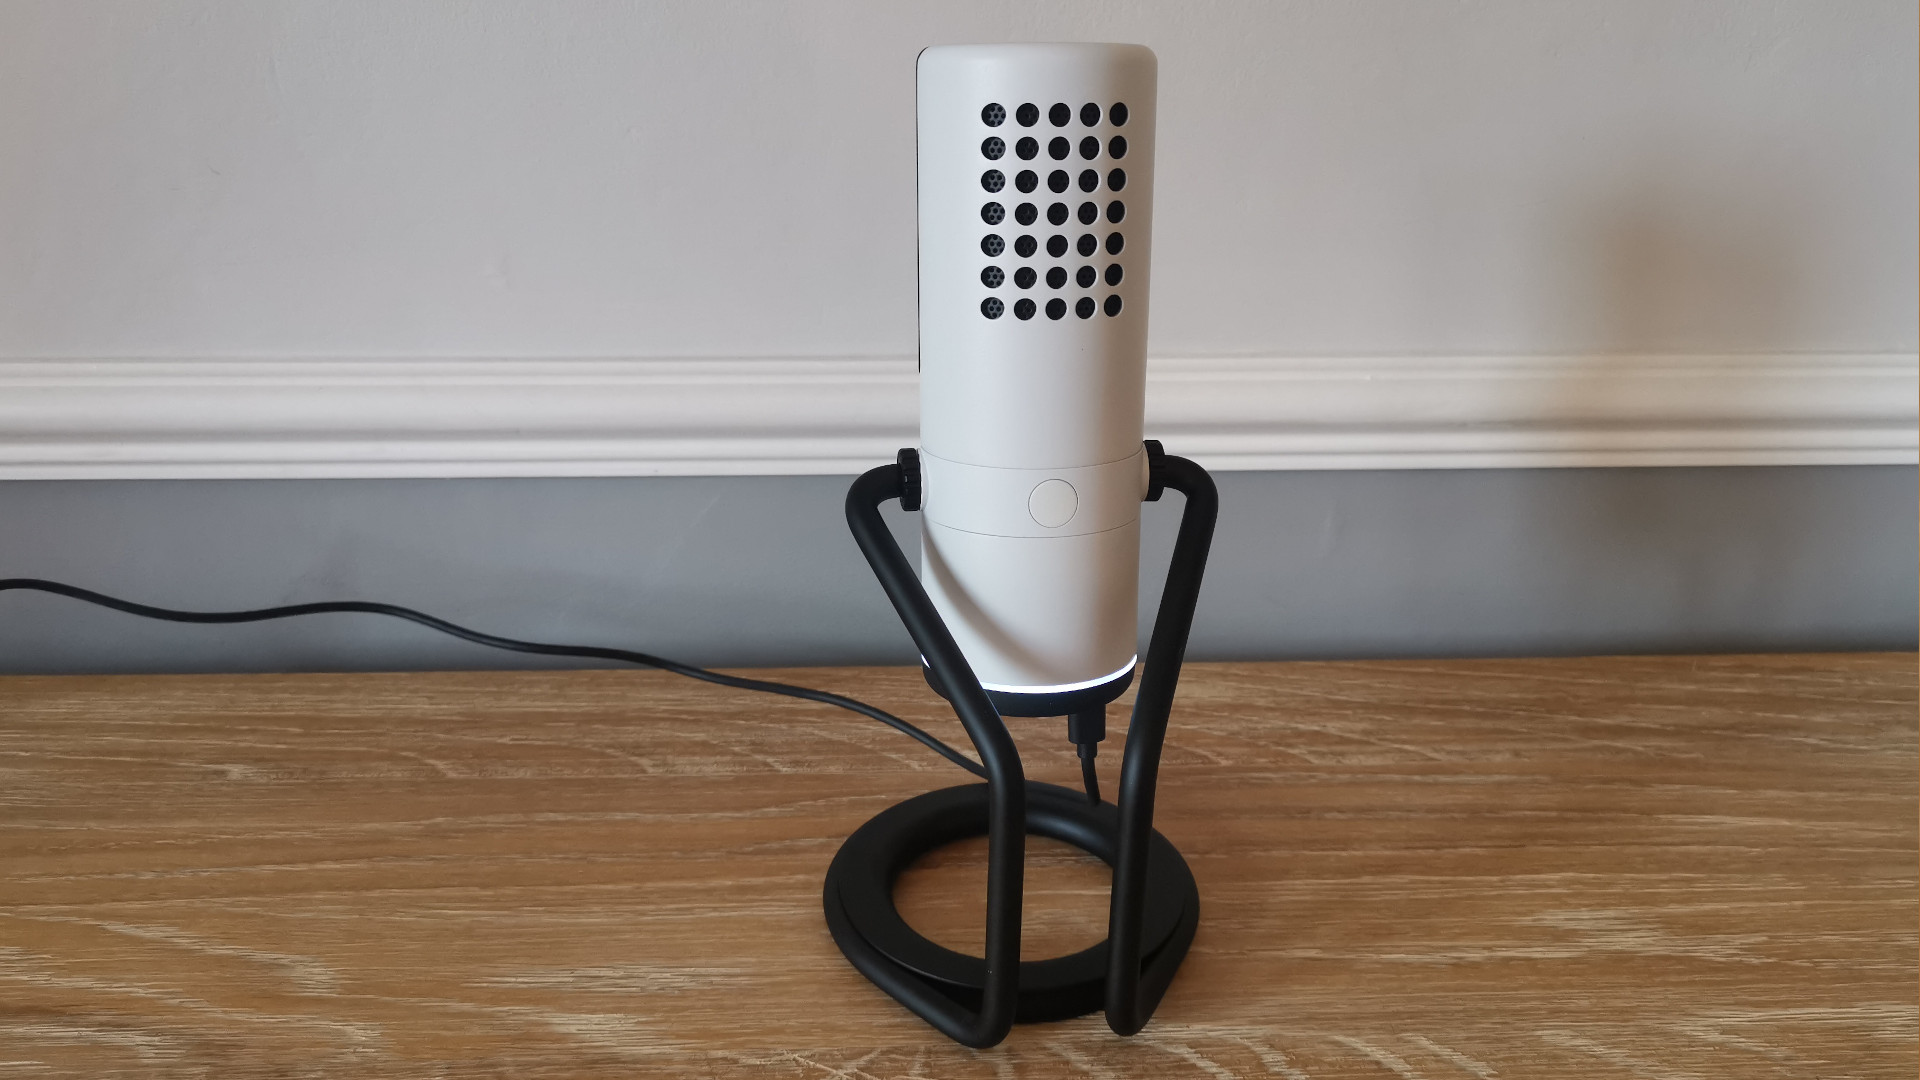 A wider rear shot of the NZXT Capsule USB Microphone